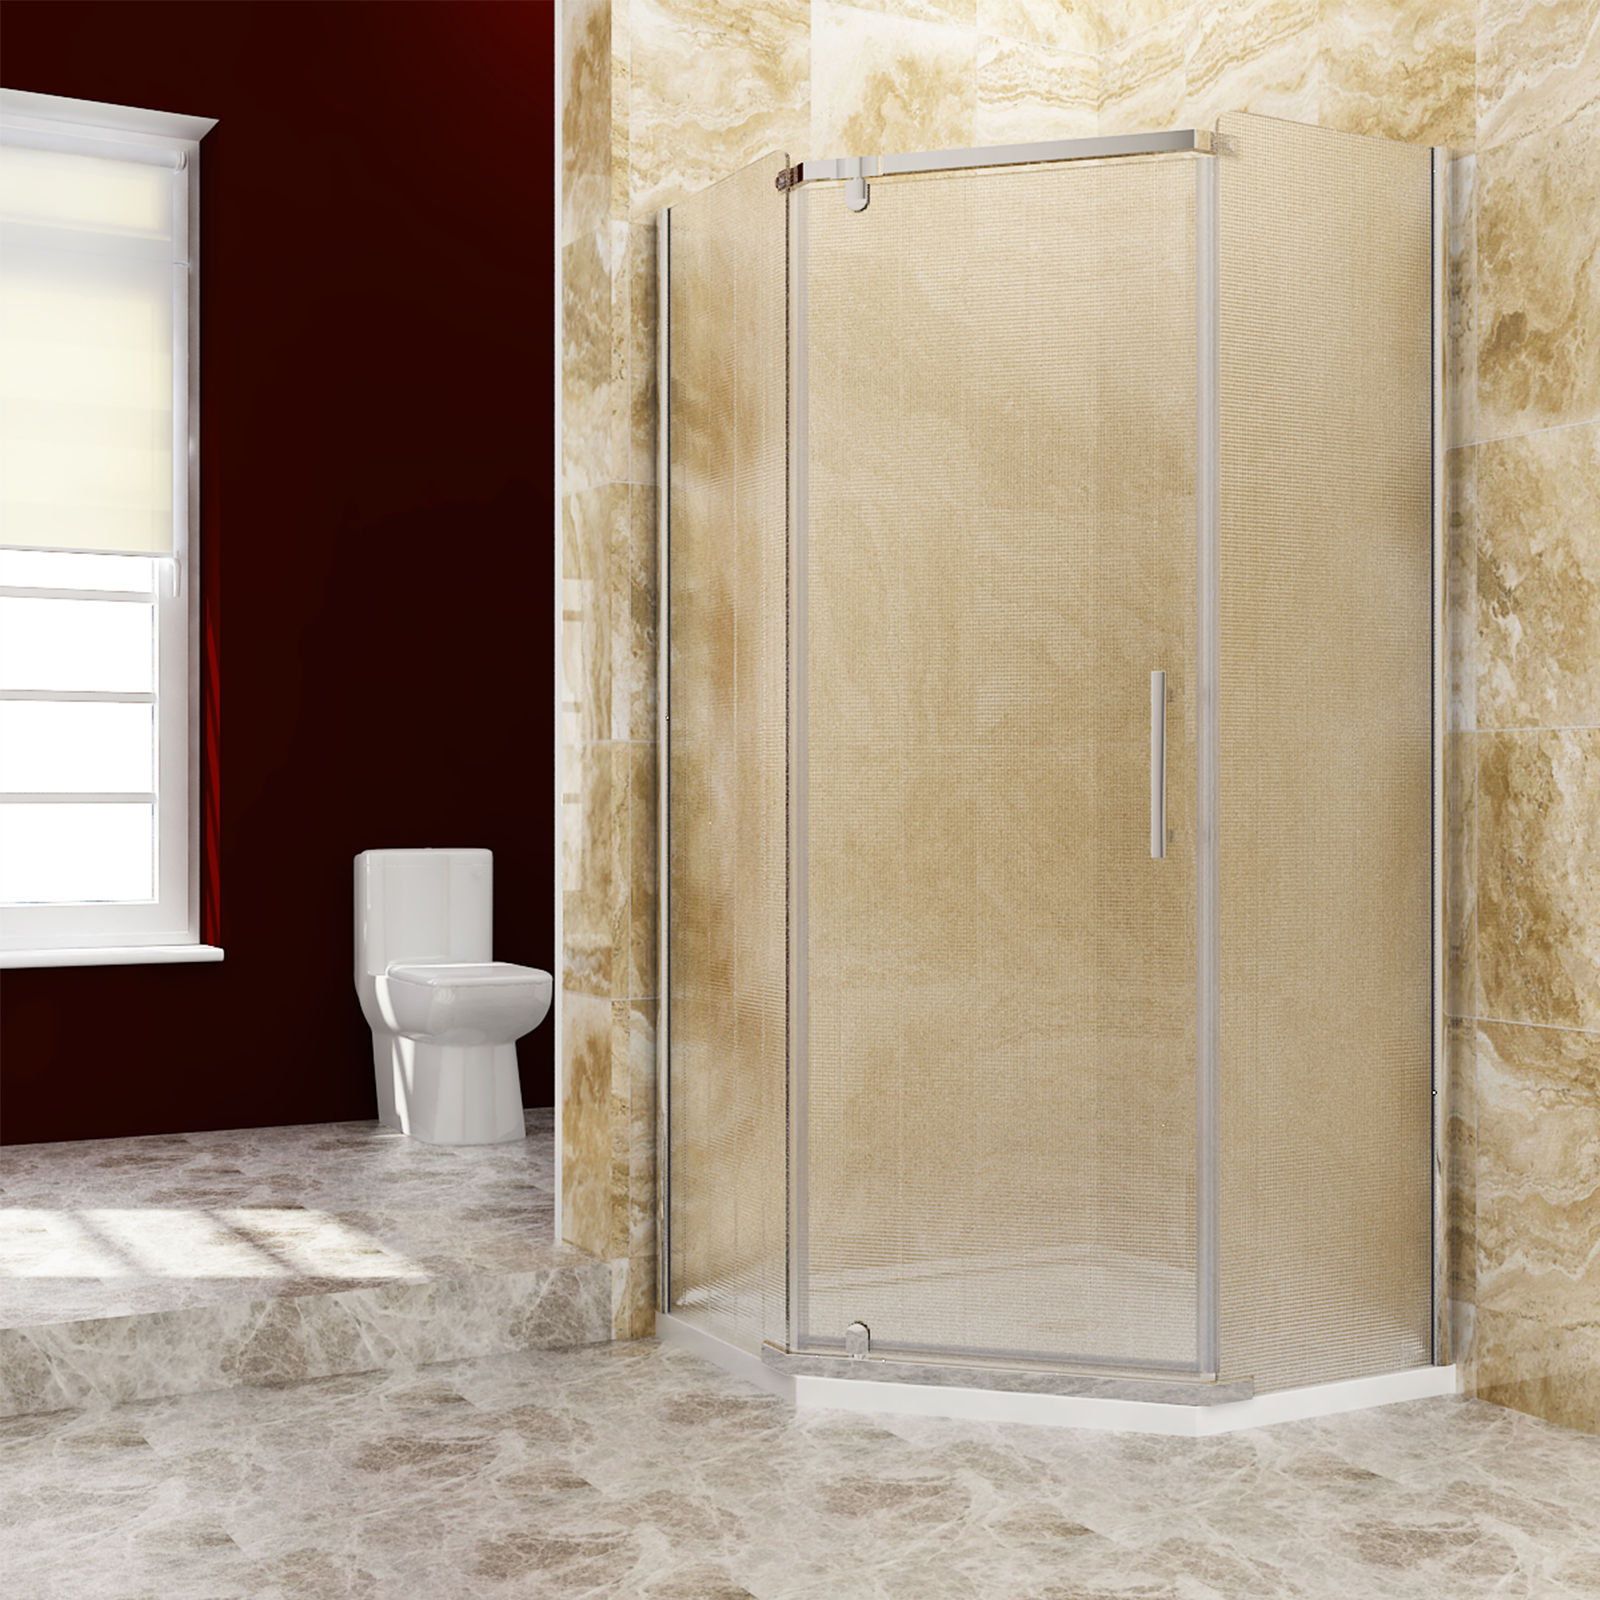 Details About Sunny Neo Angle Corner Pivot Shower Enclosure 36 3 5 In With Frosted Glass Base